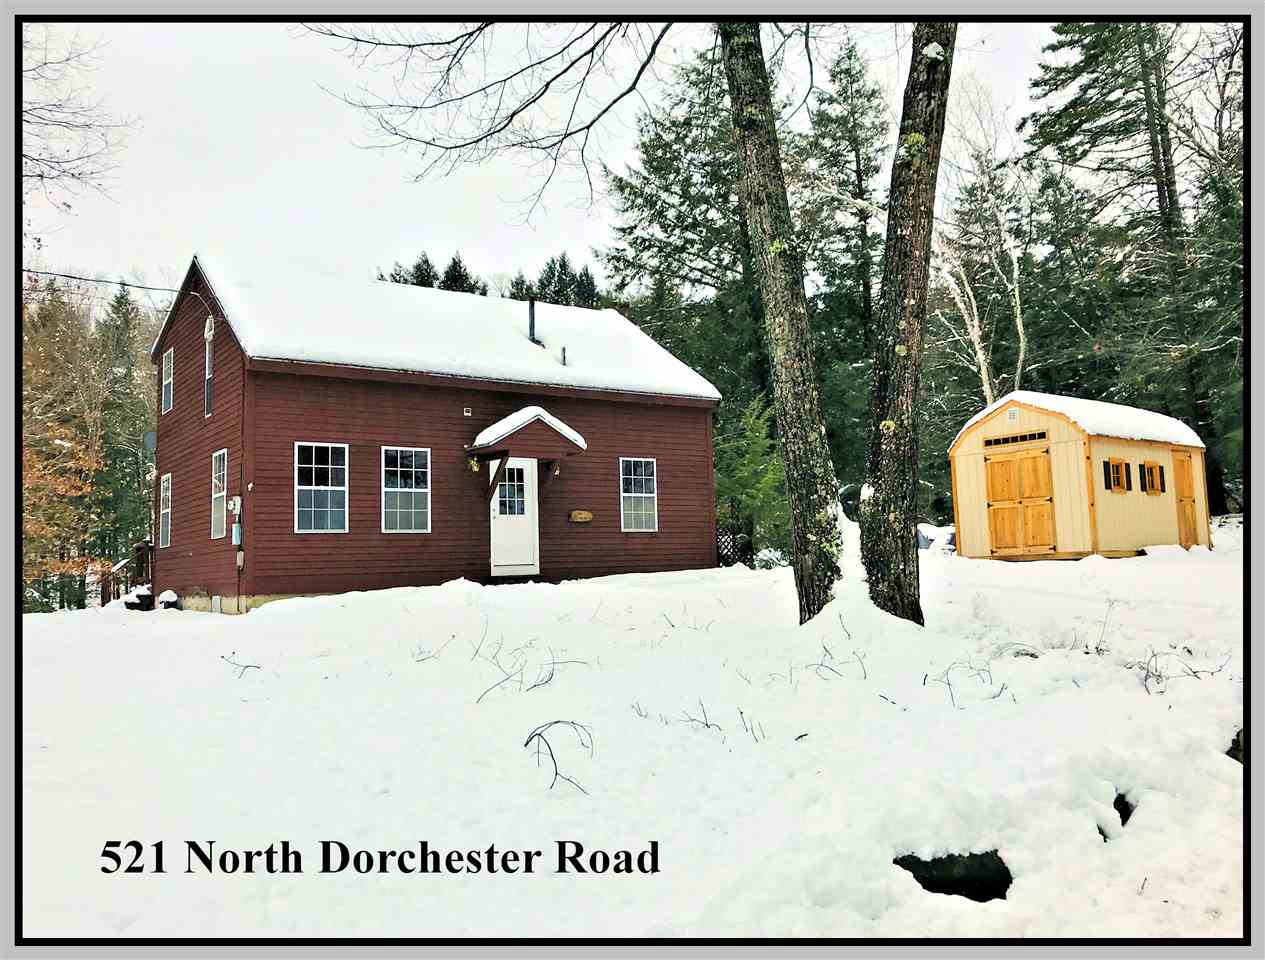 Main Image of 521 North Dorchester Wentworth NH 03282